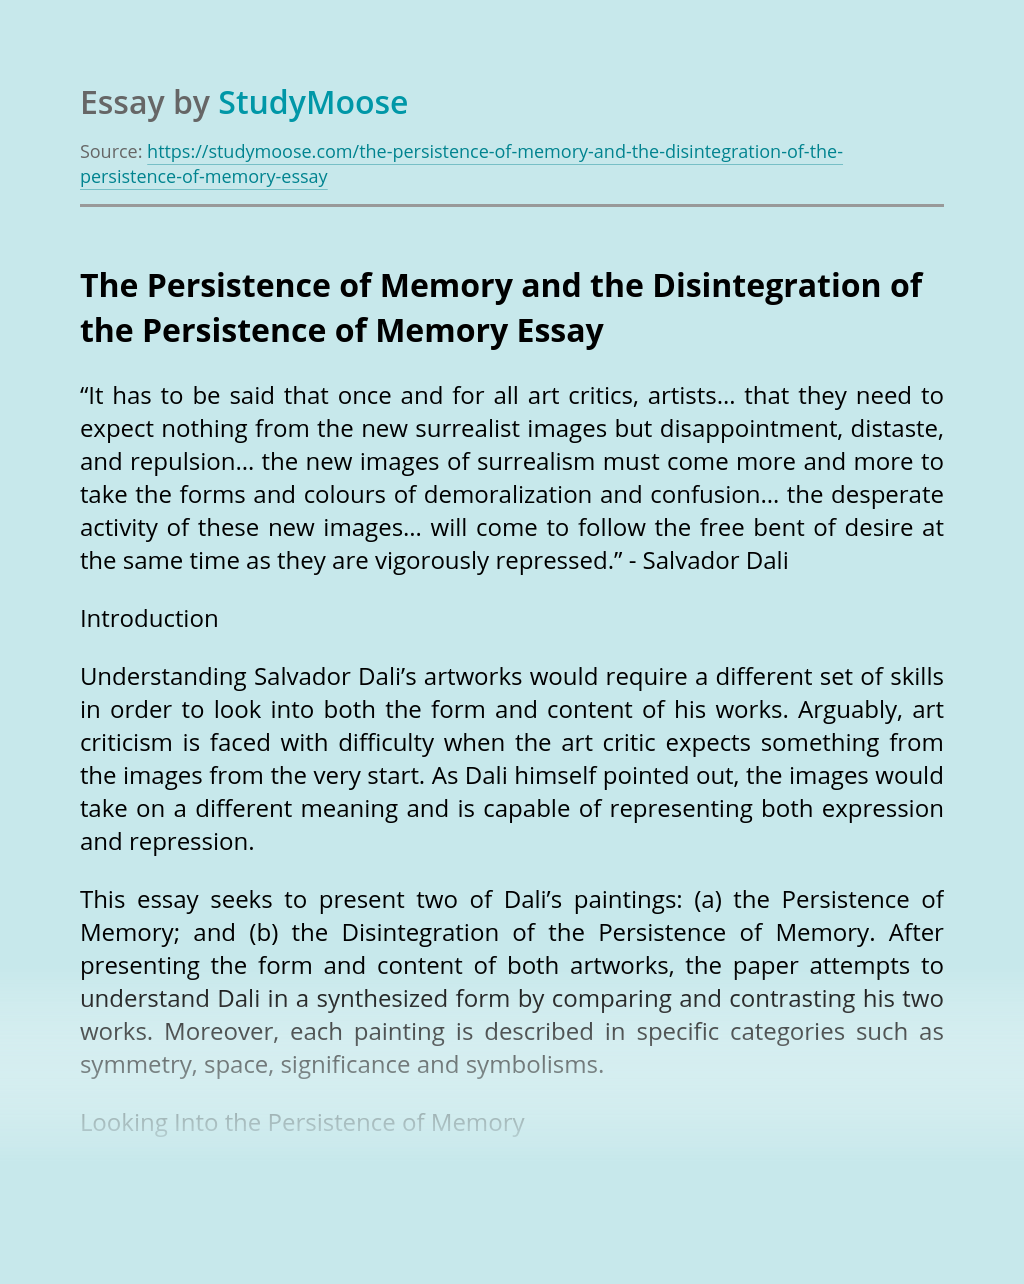 The Persistence of Memory and the Disintegration of the Persistence of Memory